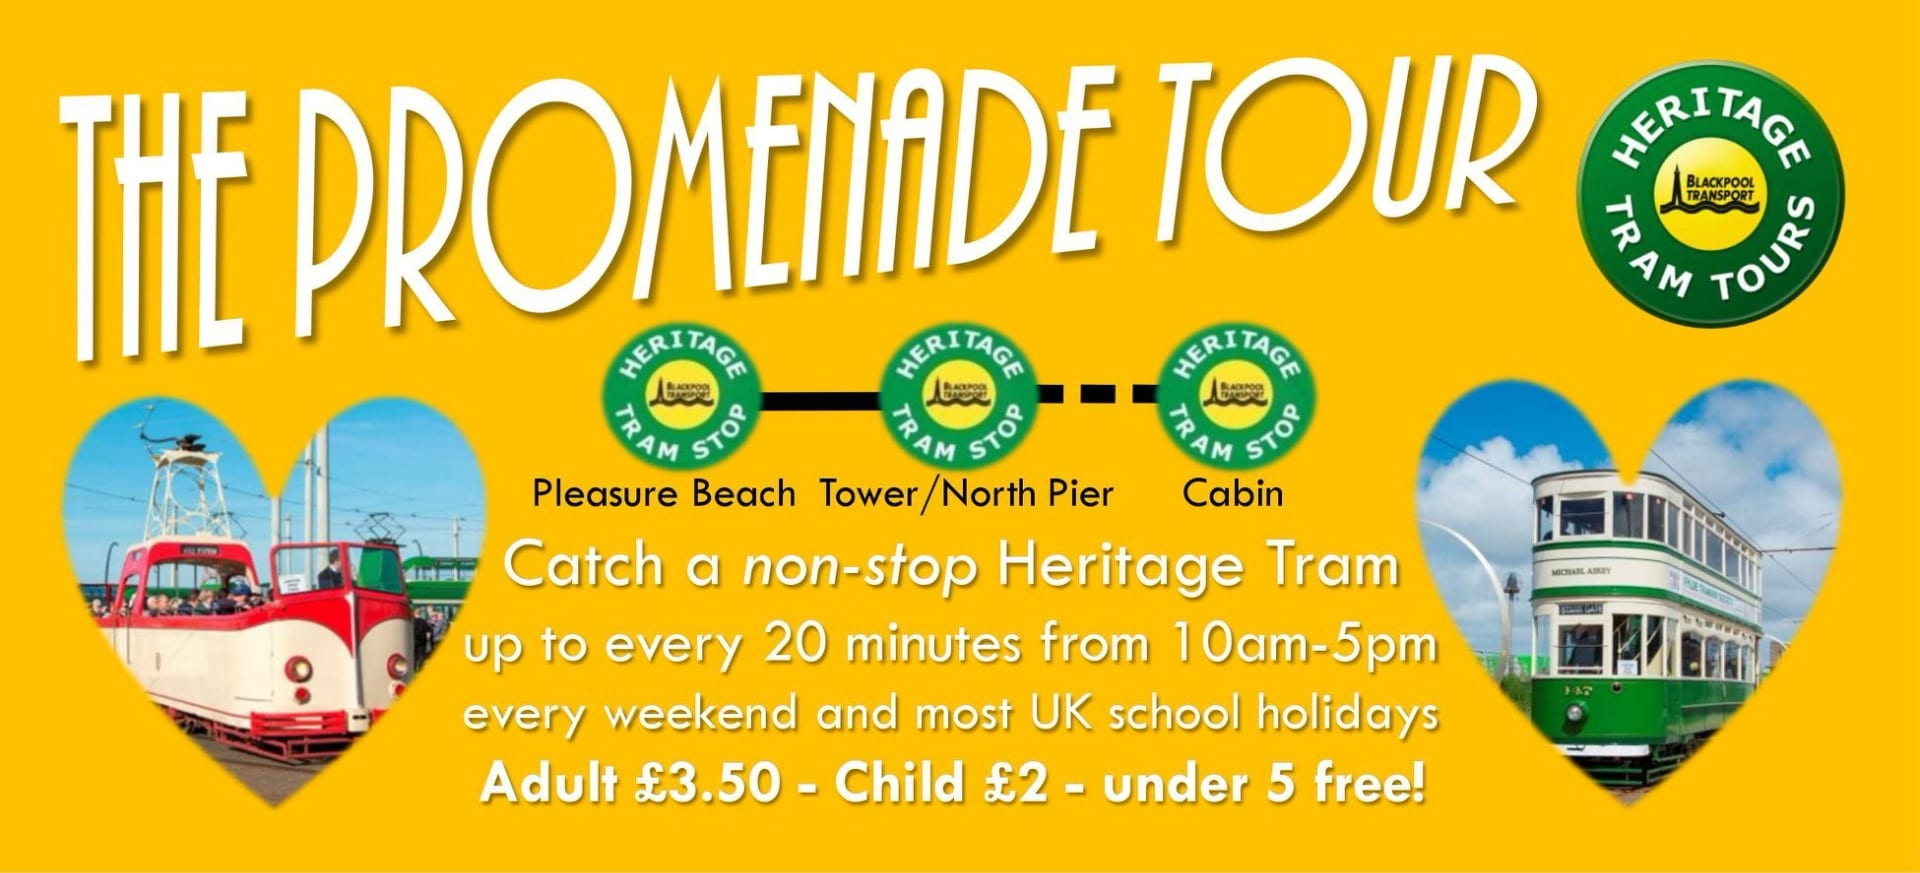 Blackpool Heritage Tram Tours along the promenade